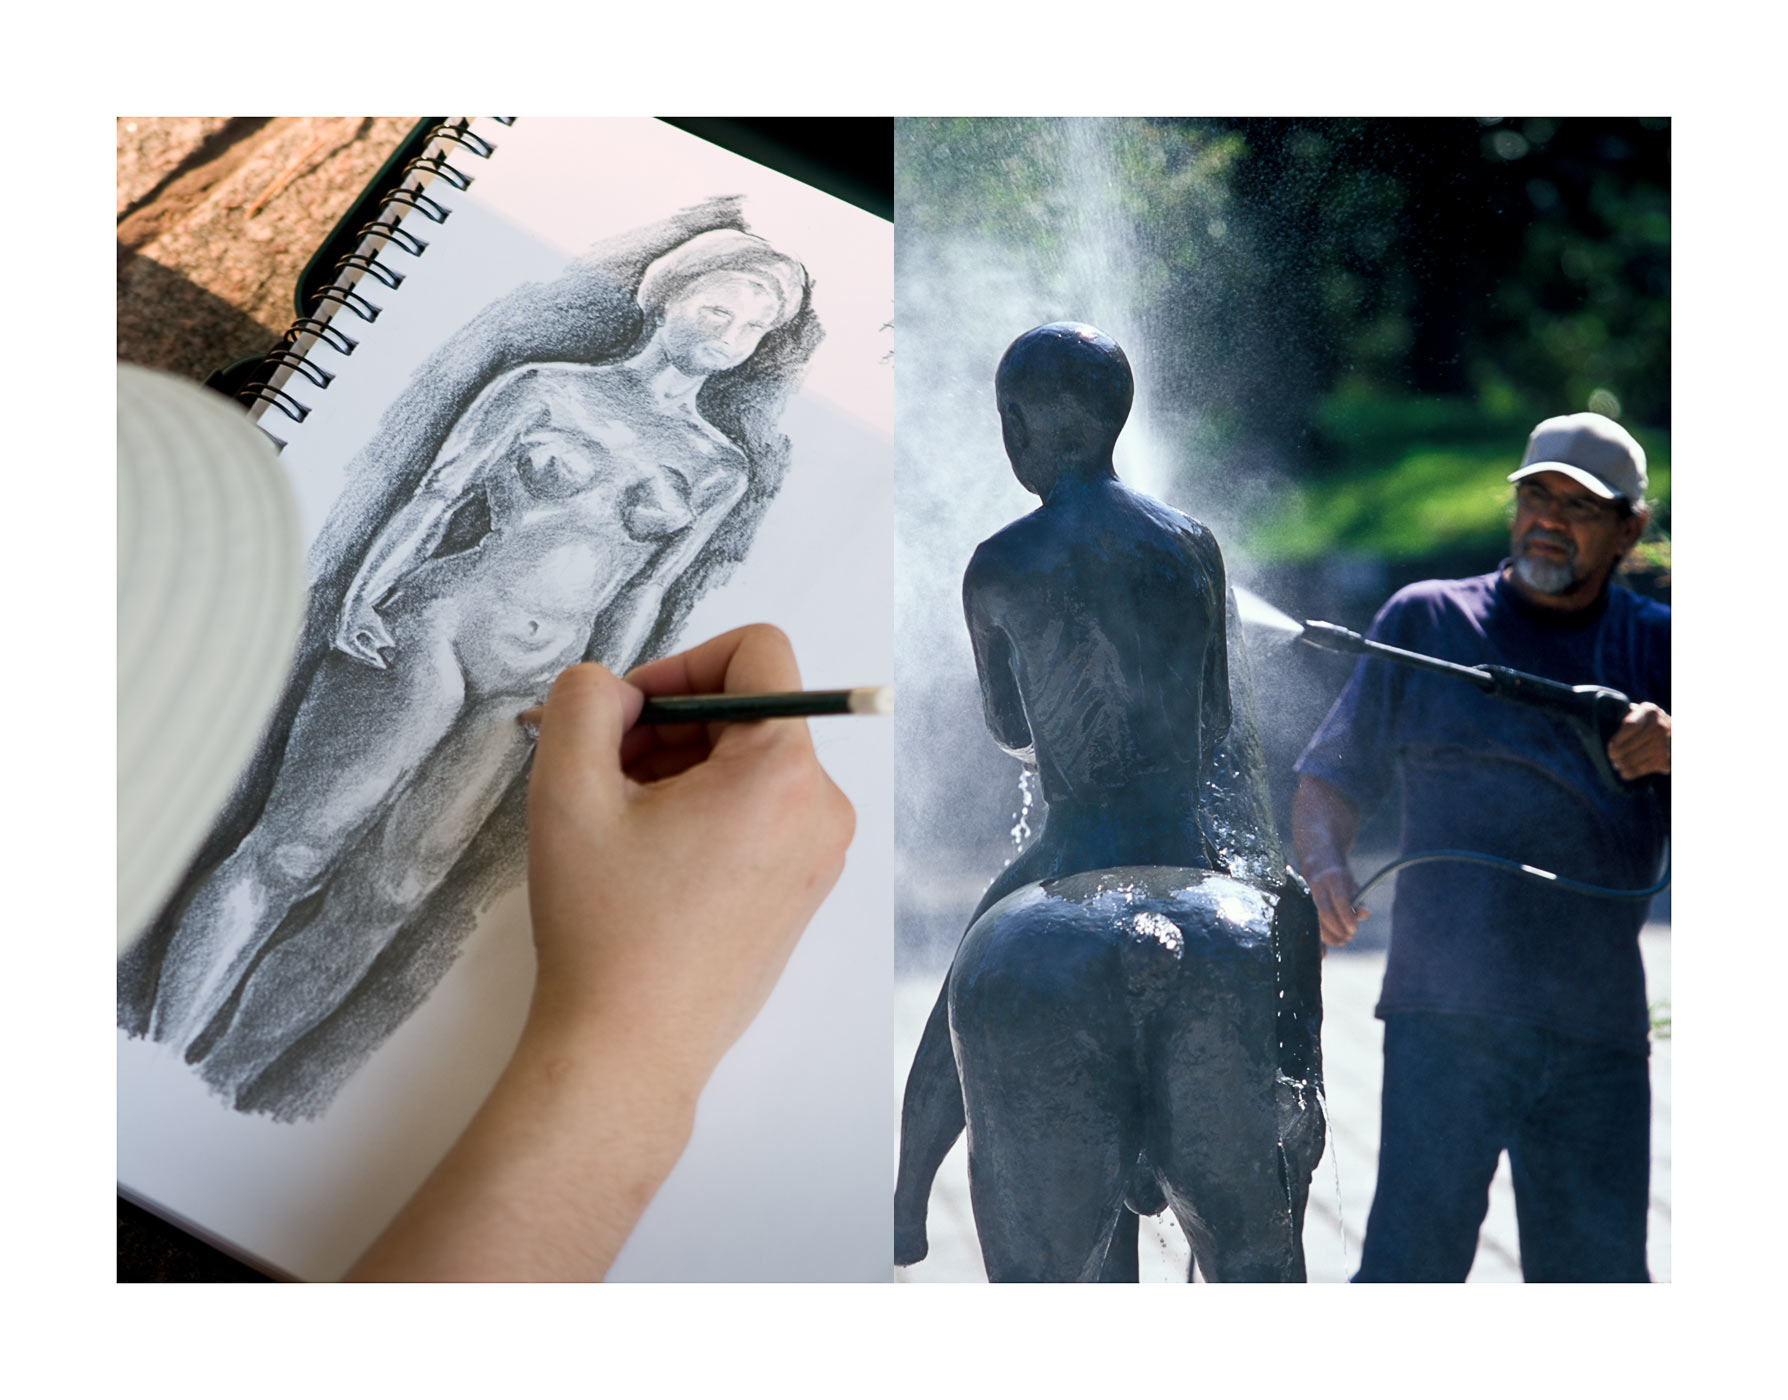 SKETCHPAD & ART CONSERVATION ON SCULPTURE